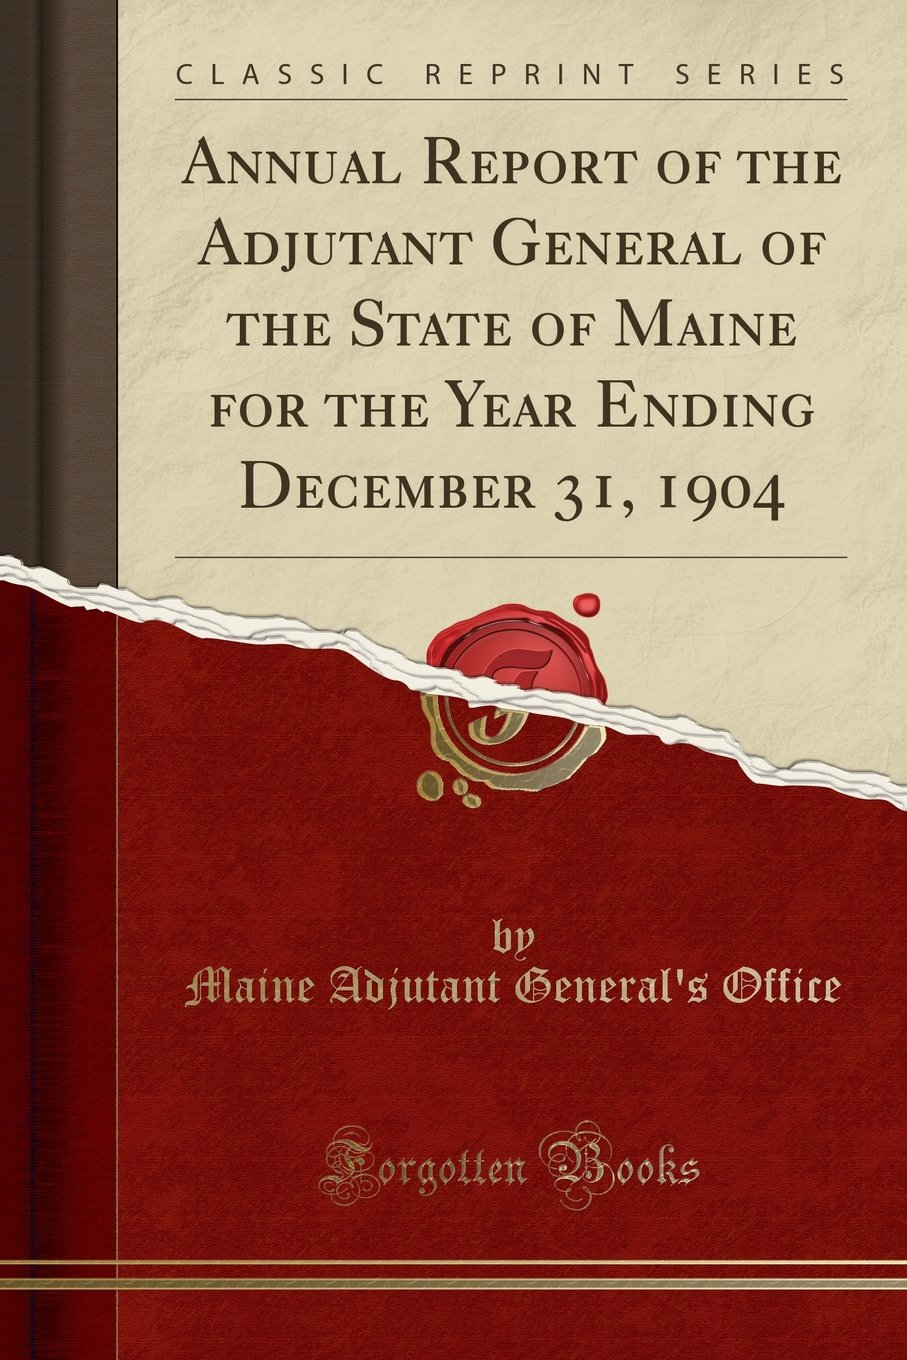 Annual Report of the Adjutant General of the State of Maine for the Year Ending December 31, 1904 (Classic Reprint) pdf epub